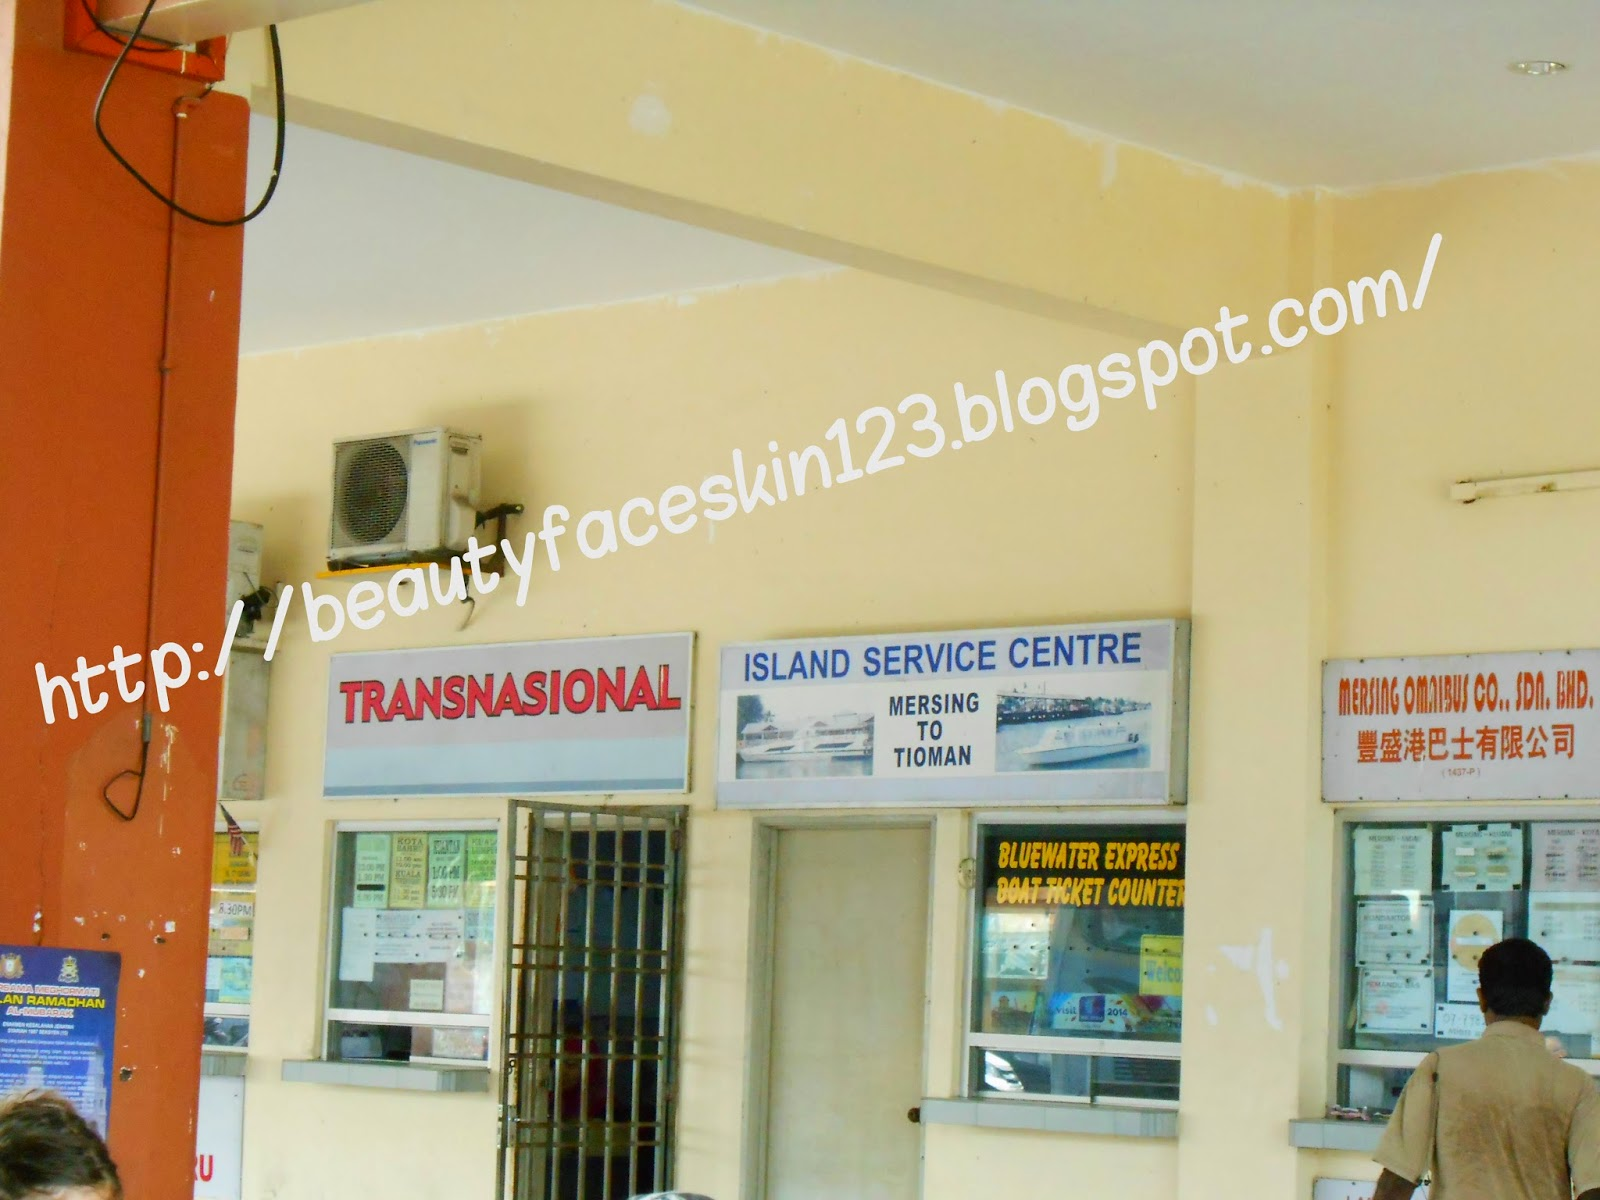 HOW TO COME TO TIOMAN ISLAND VIA PUBLIC TRANSPORT